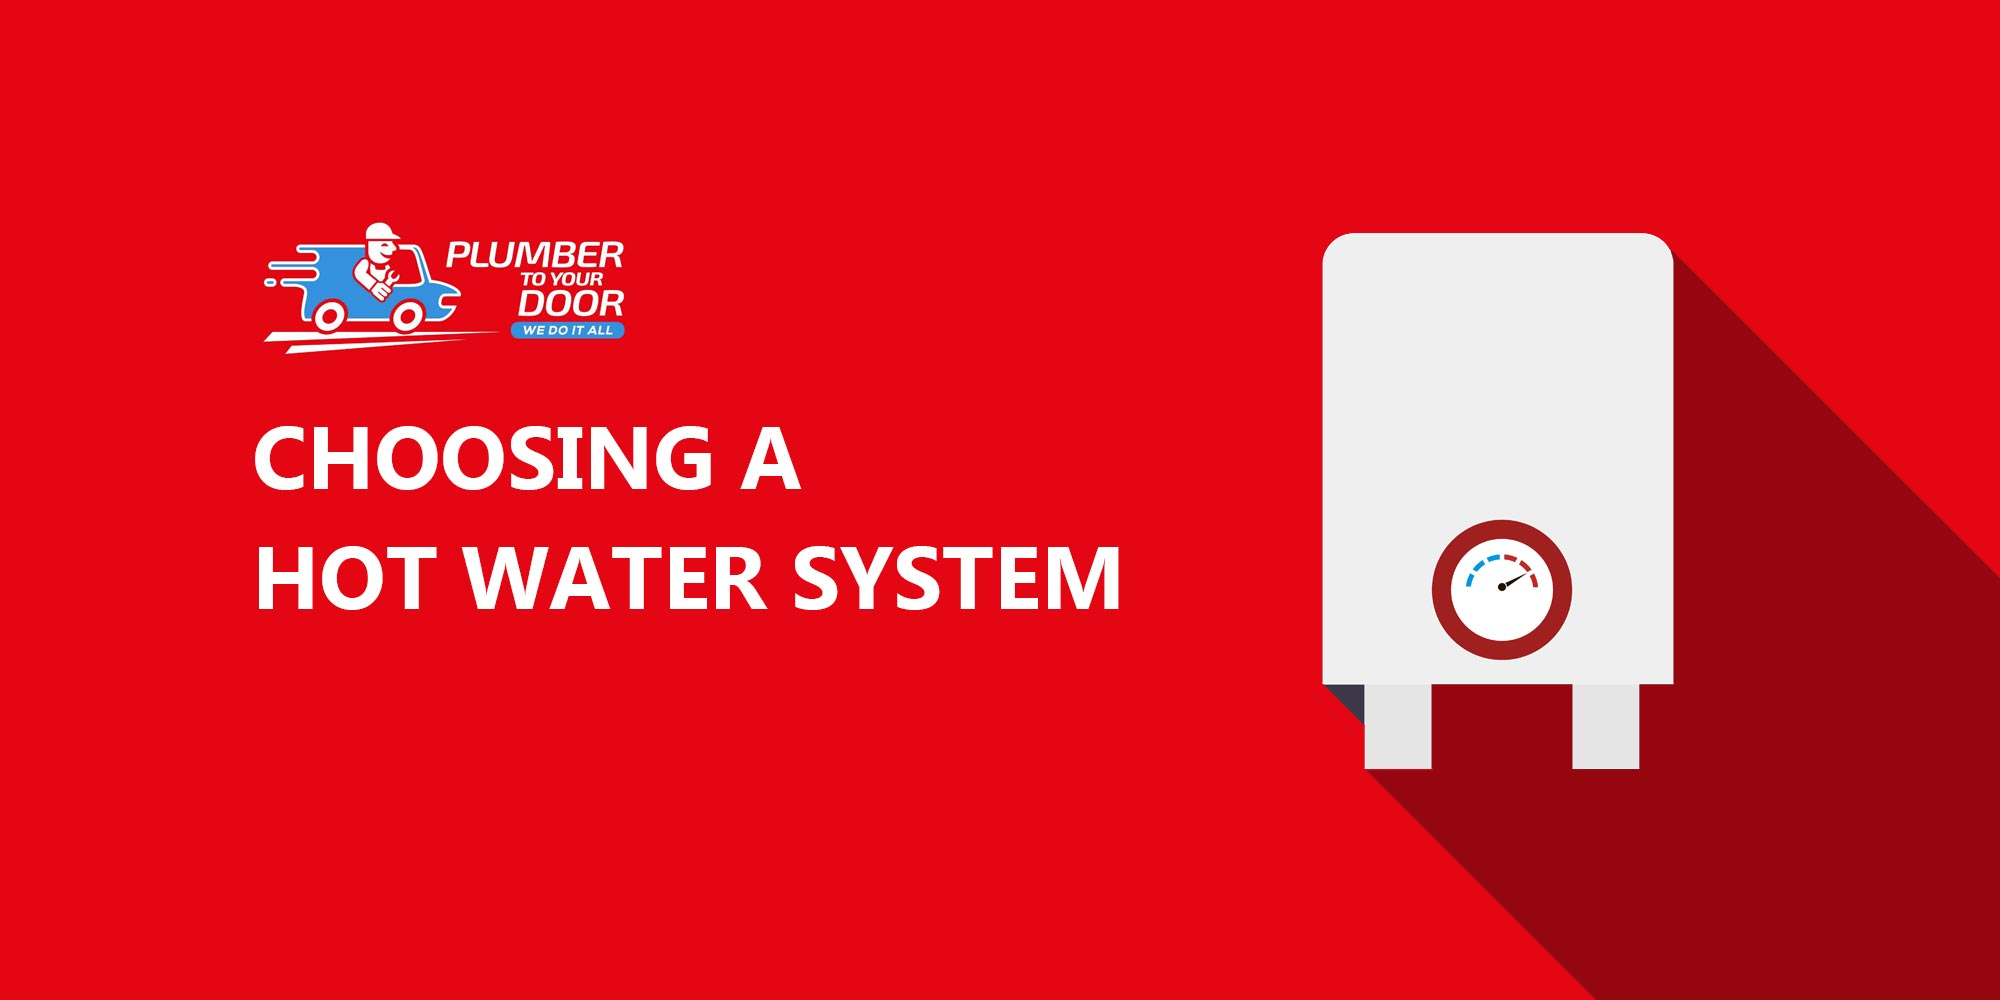 Choosing the right Hot Water System for you